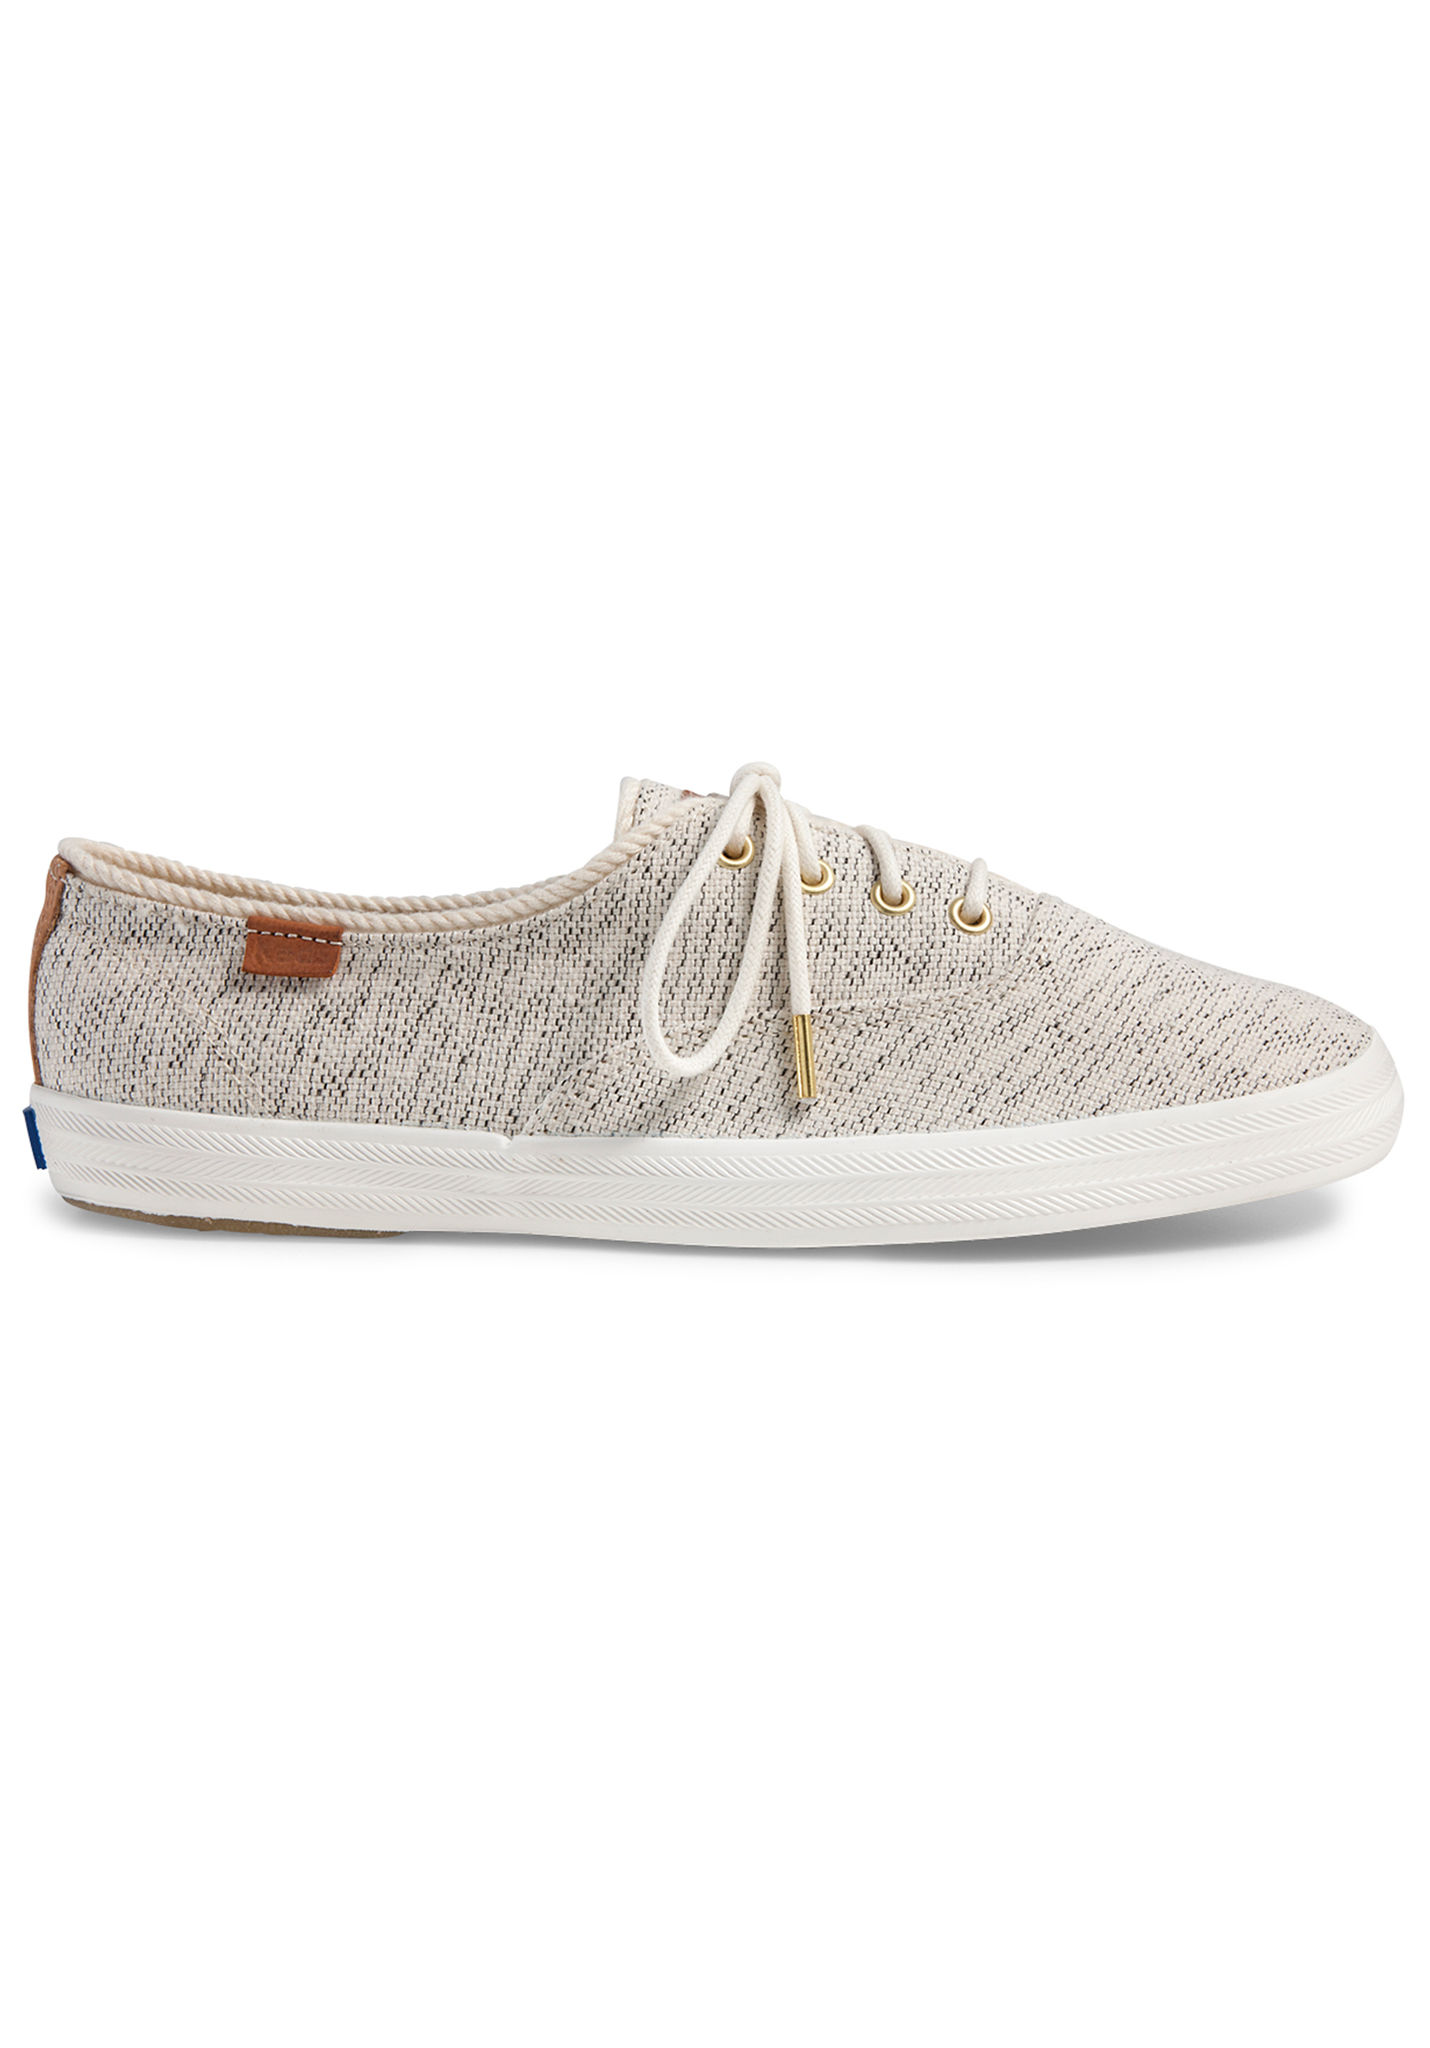 Keds CH Salt   Pepper Canvas - Sneakers for Women - White - Planet Sports 27846896af